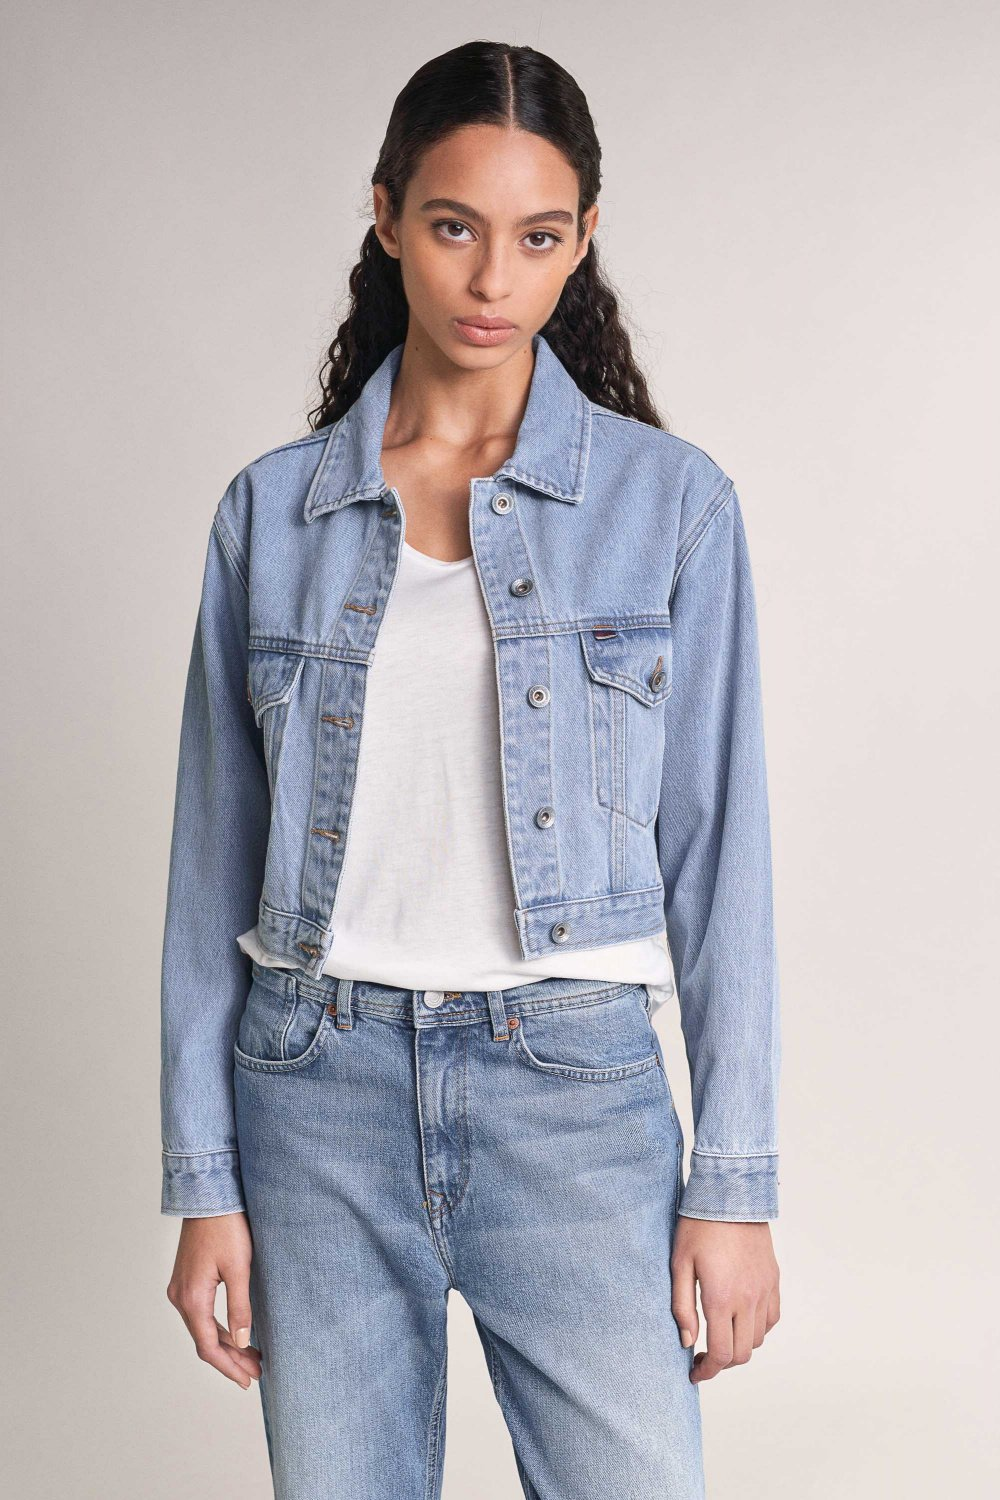 Cropped and oversize denim jacket - Salsa